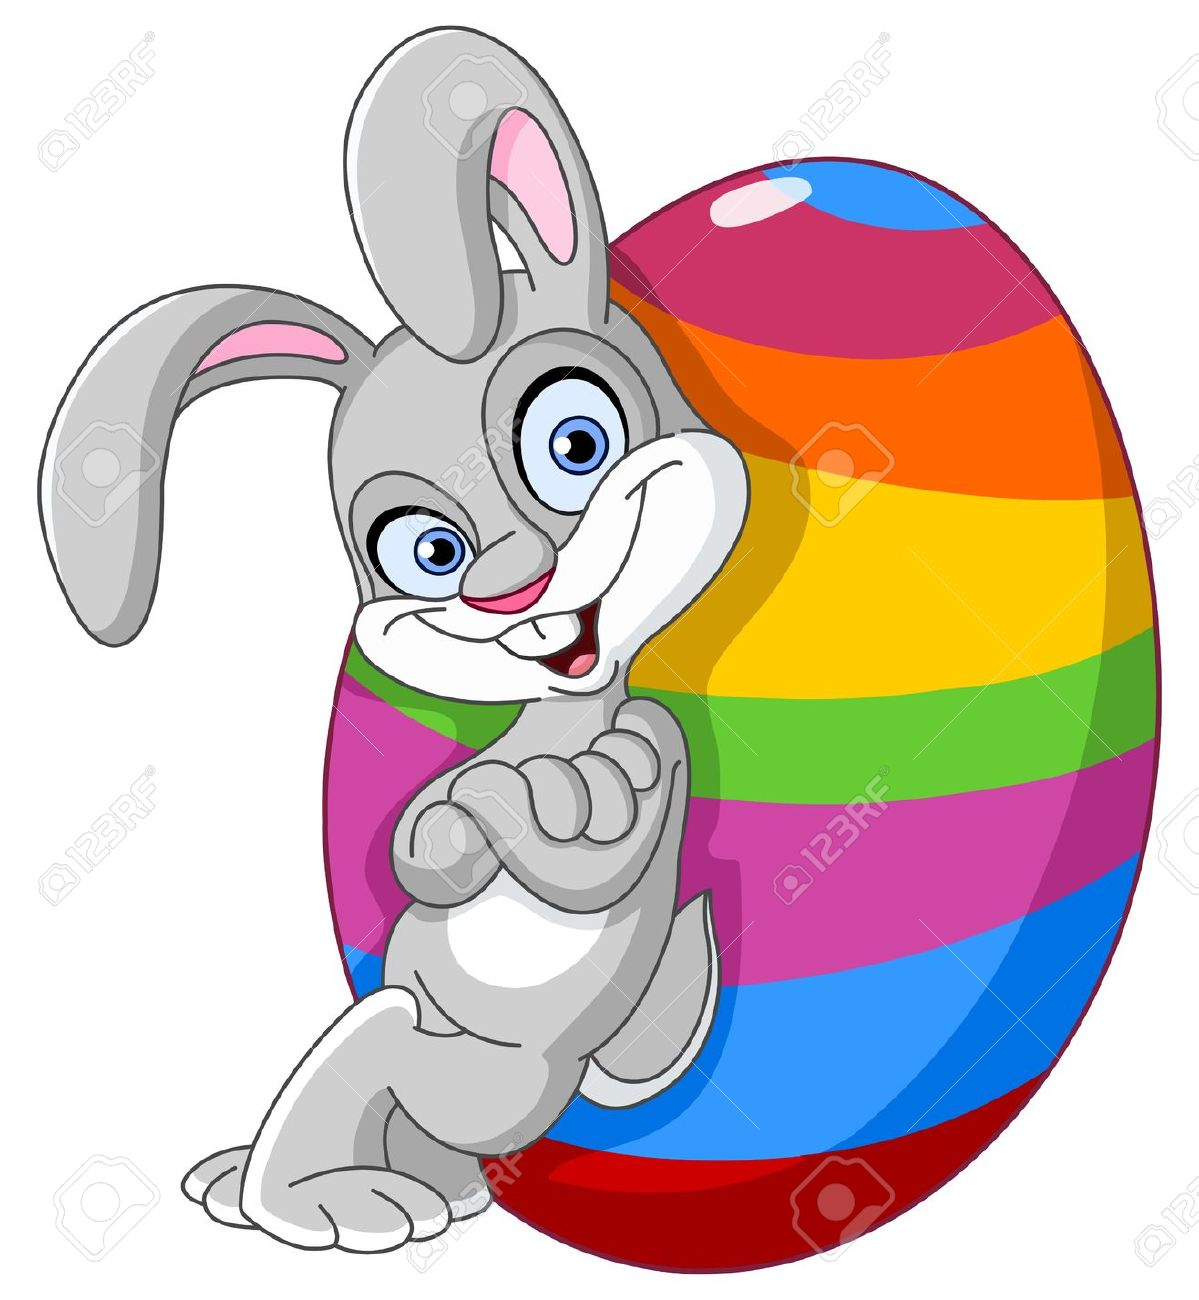 Clipart funny easter egg png stock 43,383 Easter Bunny Stock Vector Illustration And Royalty Free ... png stock